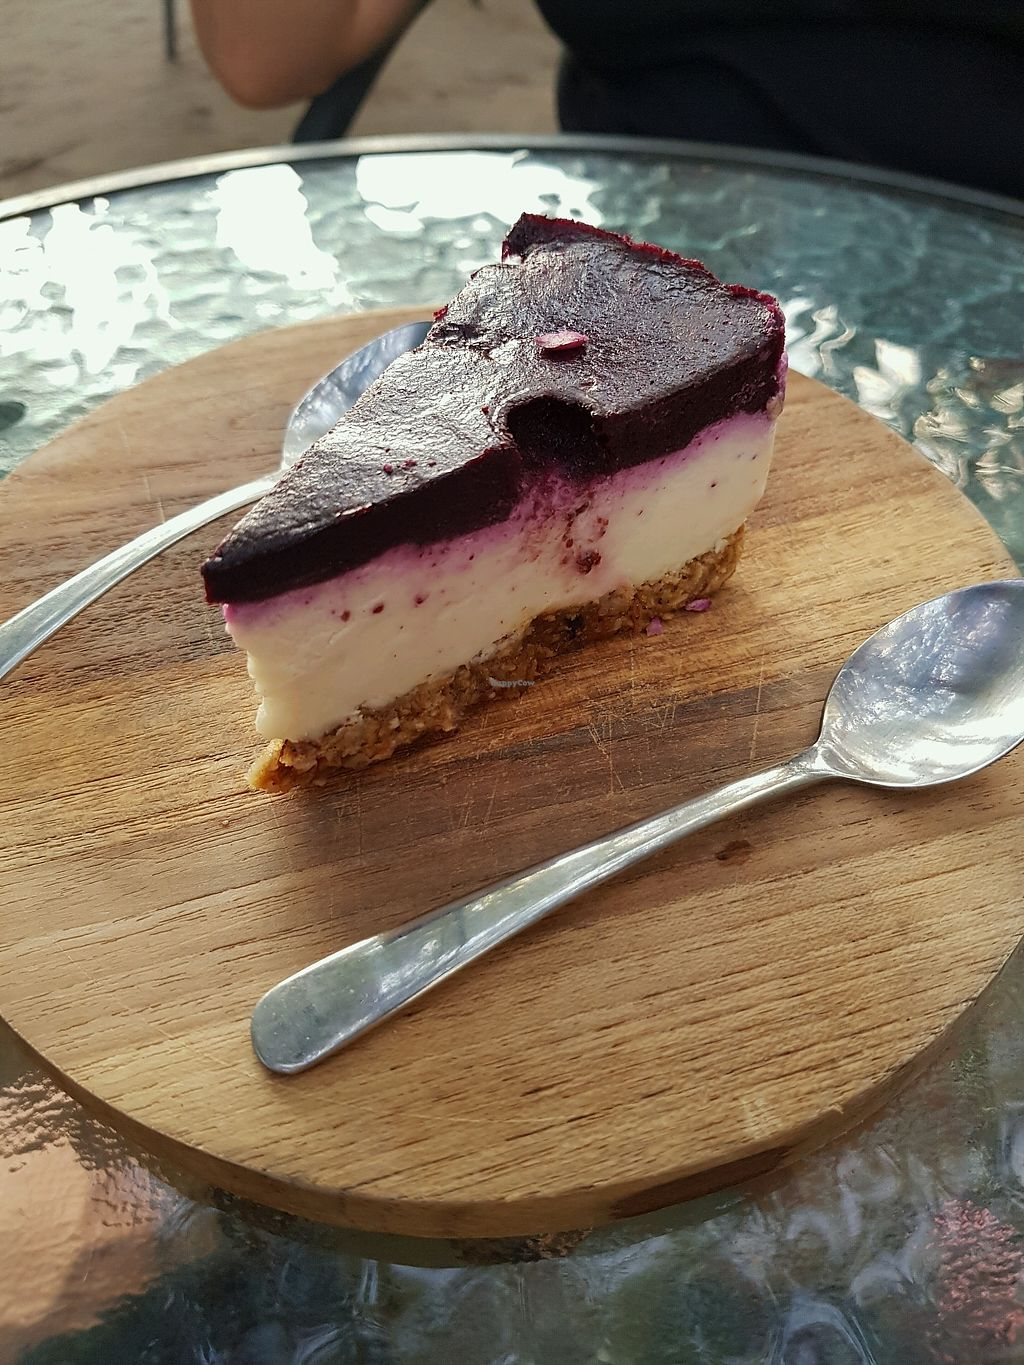 """Photo of Breadelicious  by <a href=""""/members/profile/MishyCow"""">MishyCow</a> <br/>Vegan blueberry cheesecake IDR50, 000 <br/> December 10, 2017  - <a href='/contact/abuse/image/97913/334203'>Report</a>"""